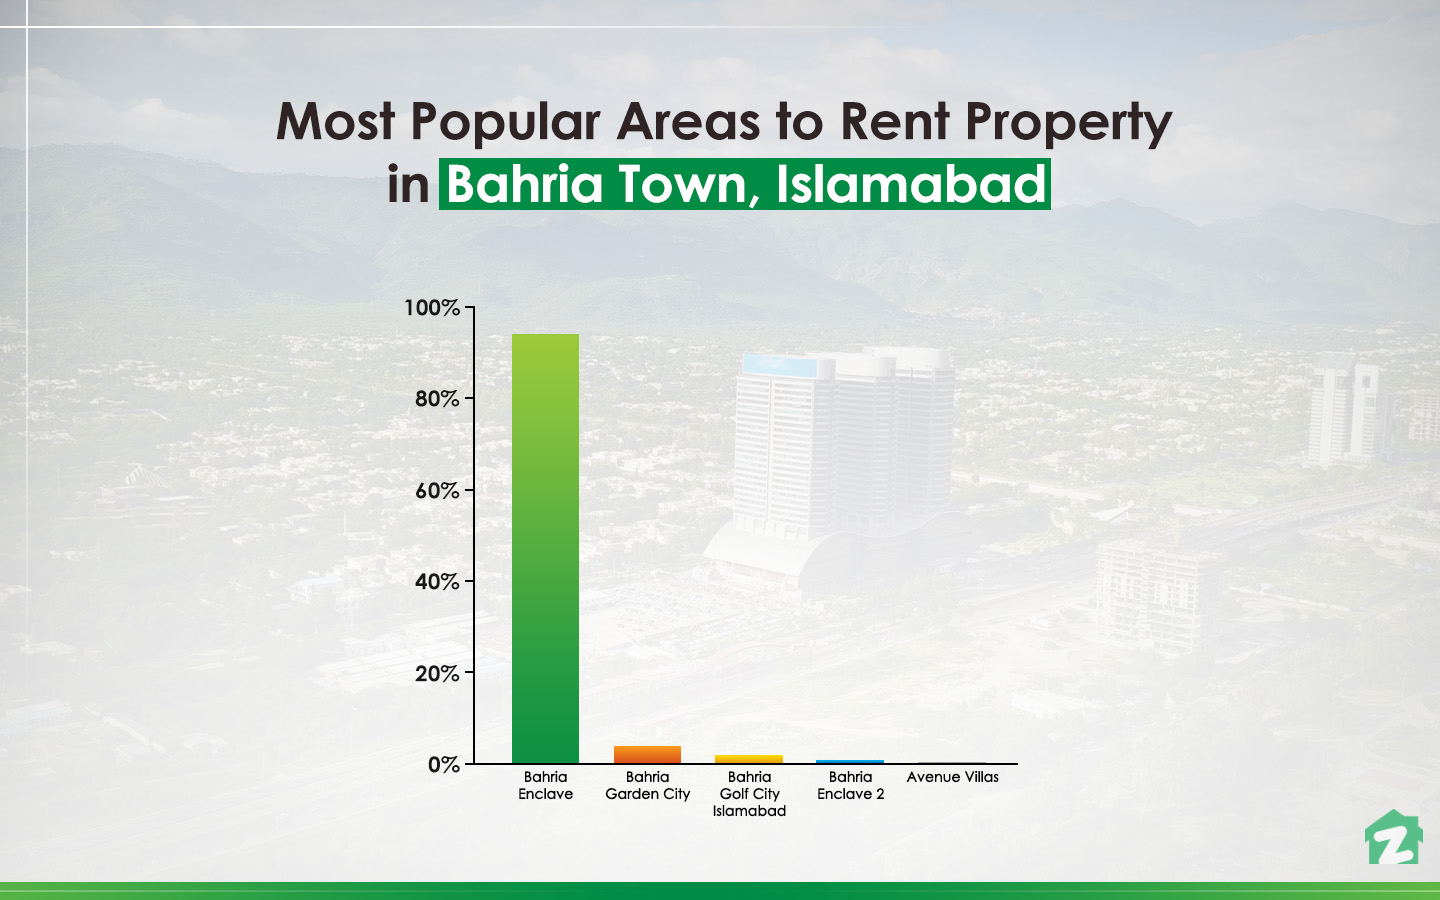 Popular areas for Renting Property in Bahria Town, Islamabad